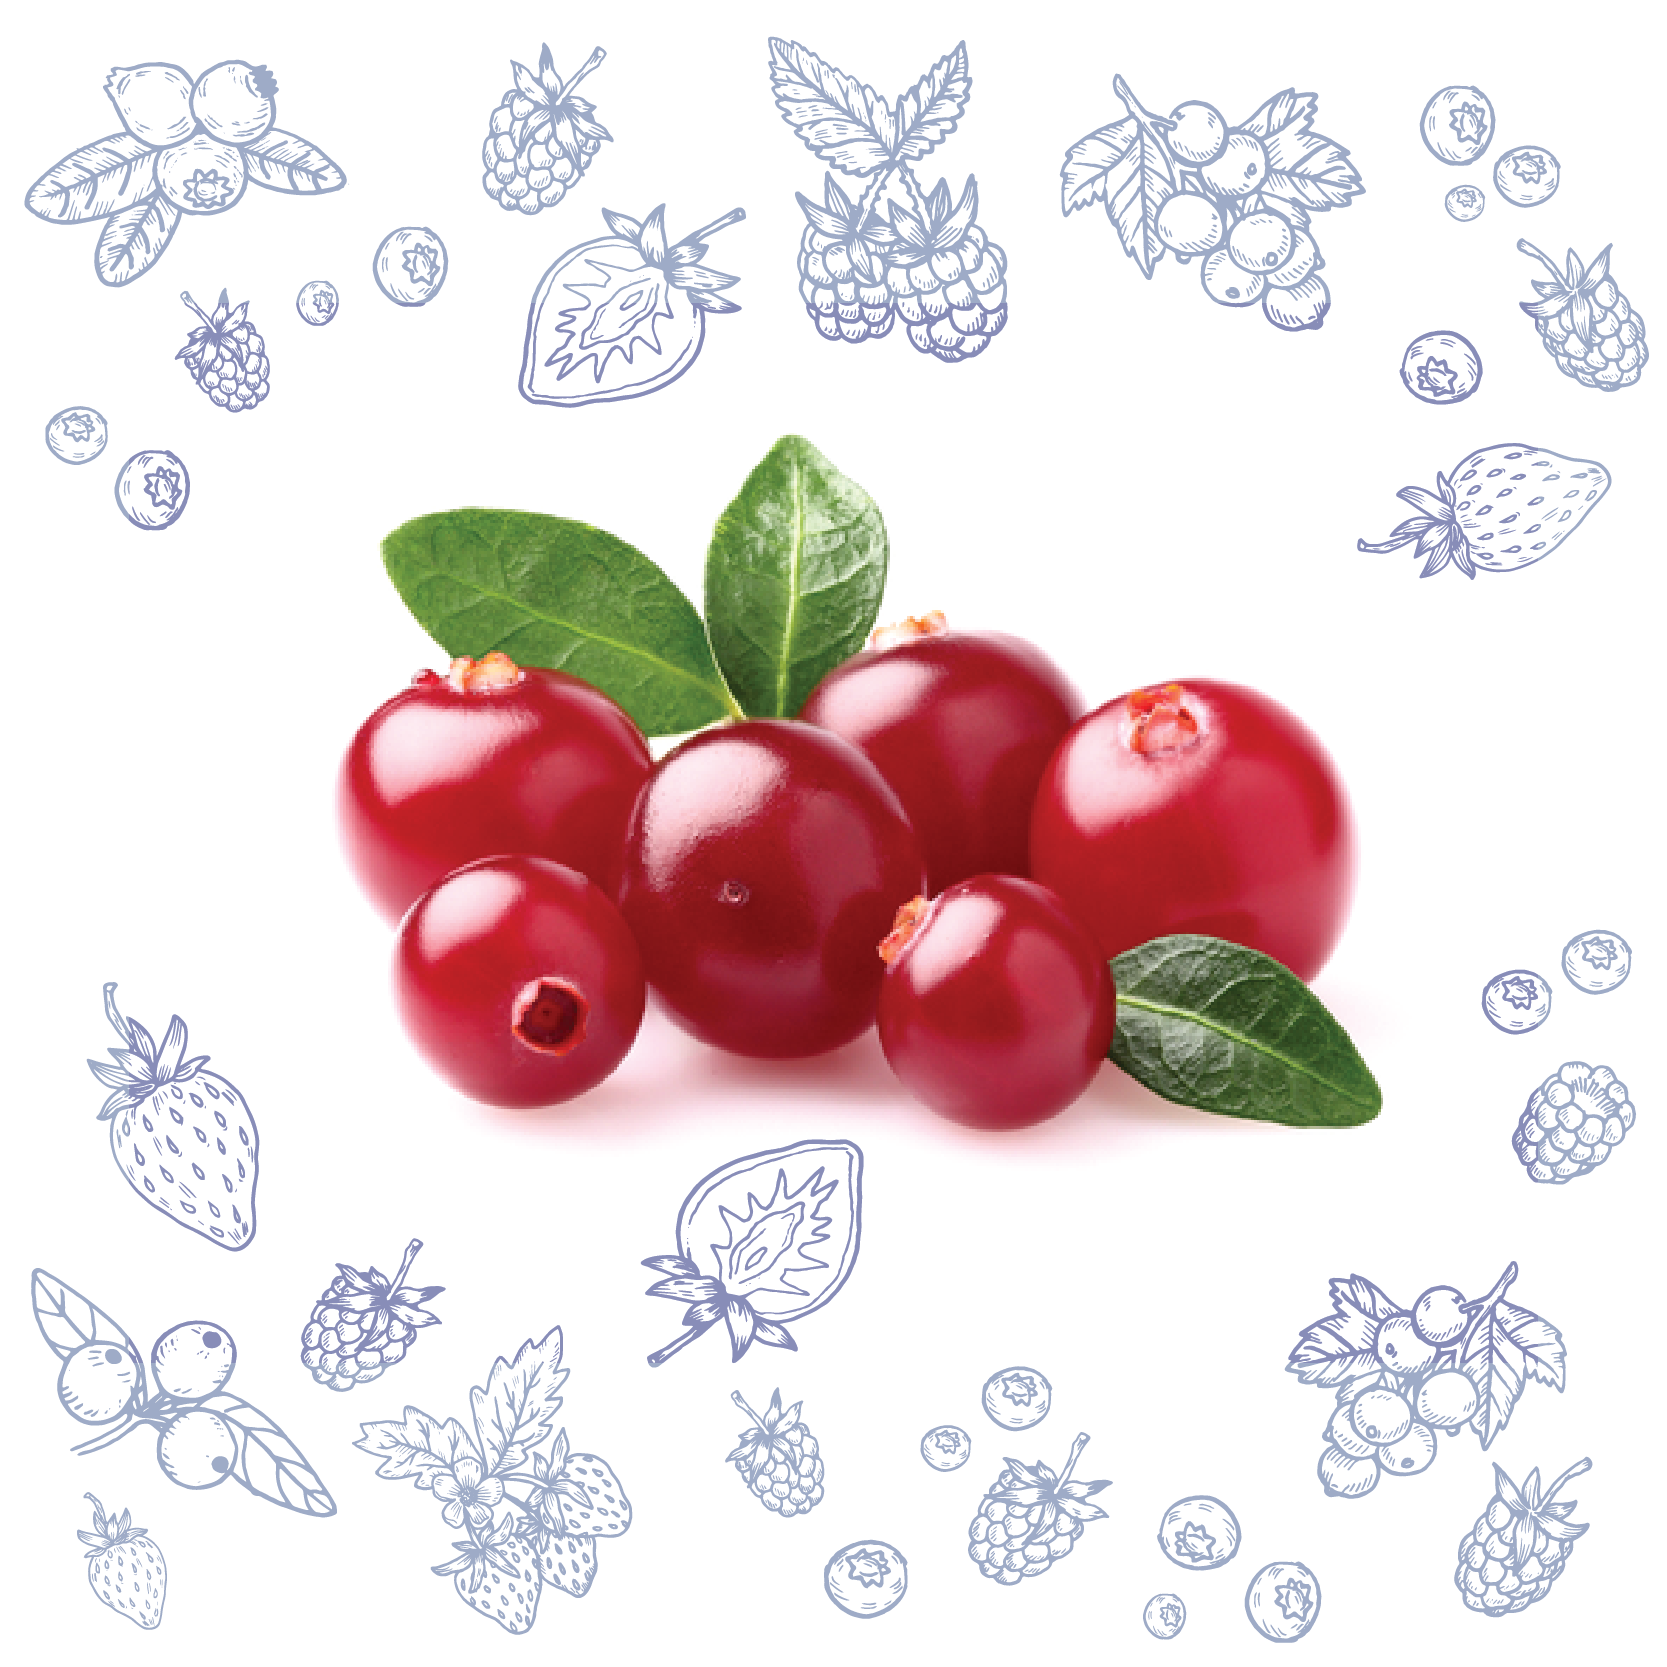 Polarica-Berries-lingonberry